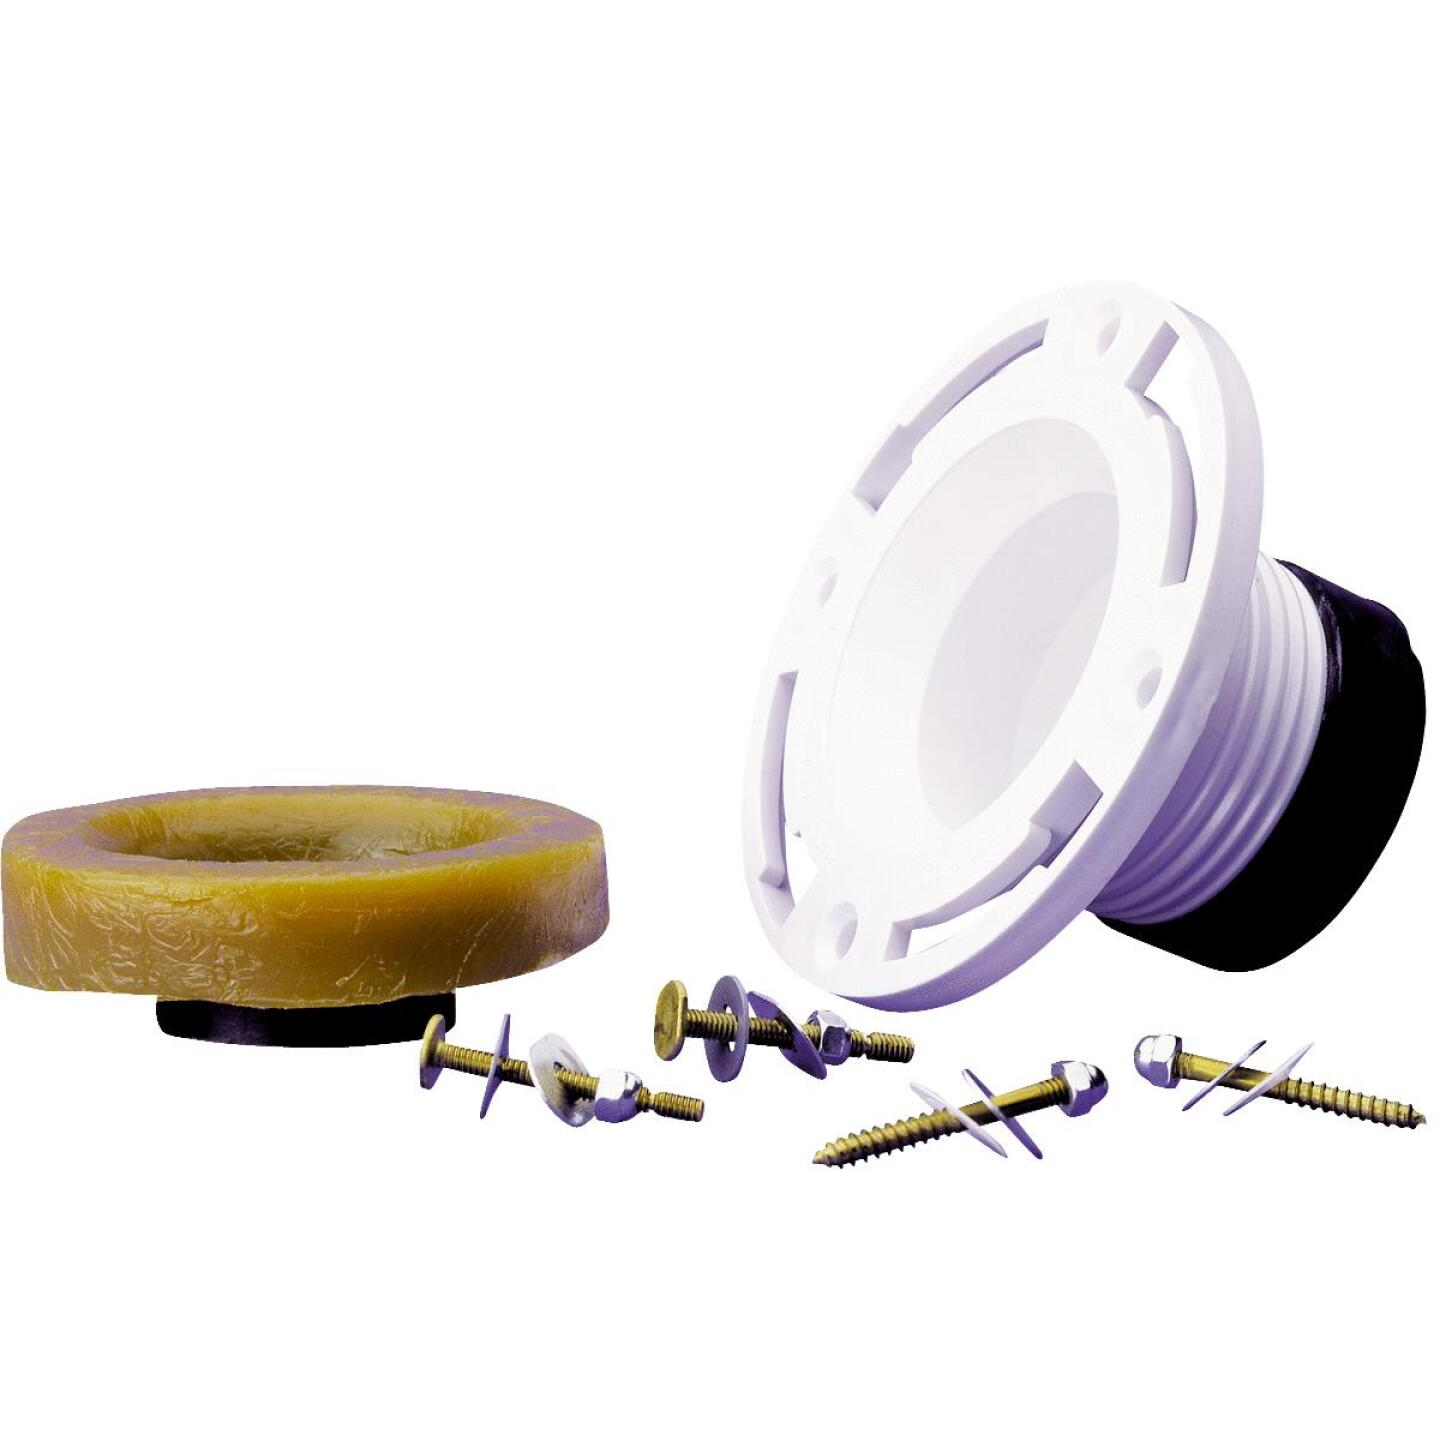 Oatey 4 In. 4 In. Cast Iron or Schedule 40 DWV PVC Closet Flange Repair Kit Image 1